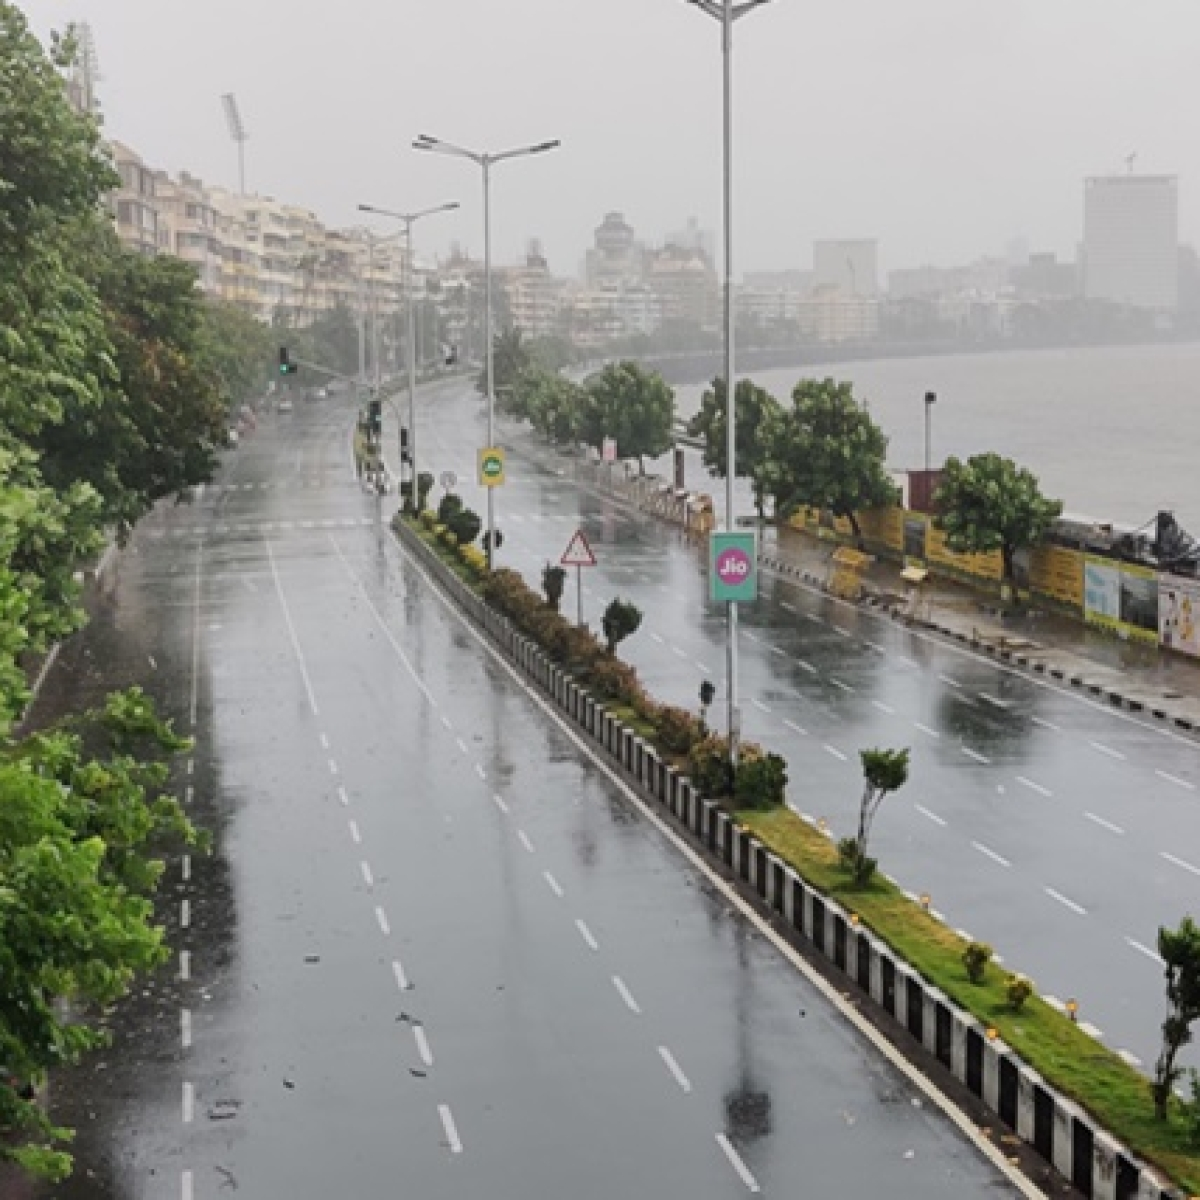 Mumbai spared major damage after Cyclone Nisarga makes landfall, uproots trees